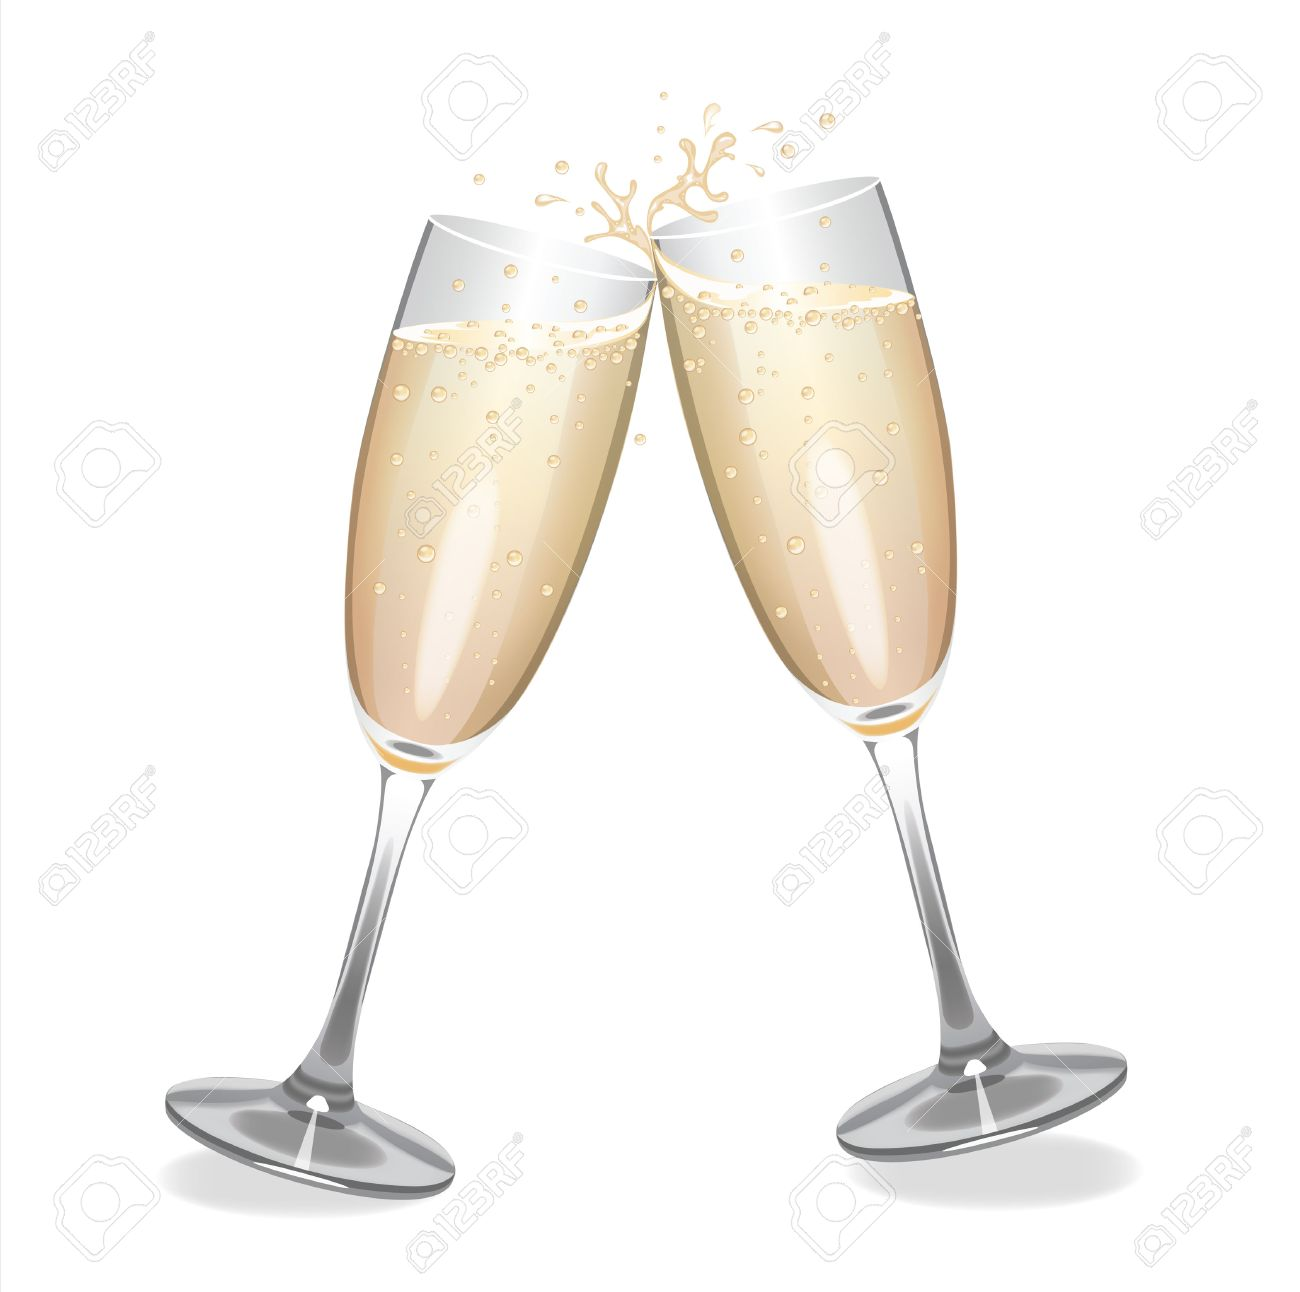 Champagne flutes clipart 1 » Clipart Station.